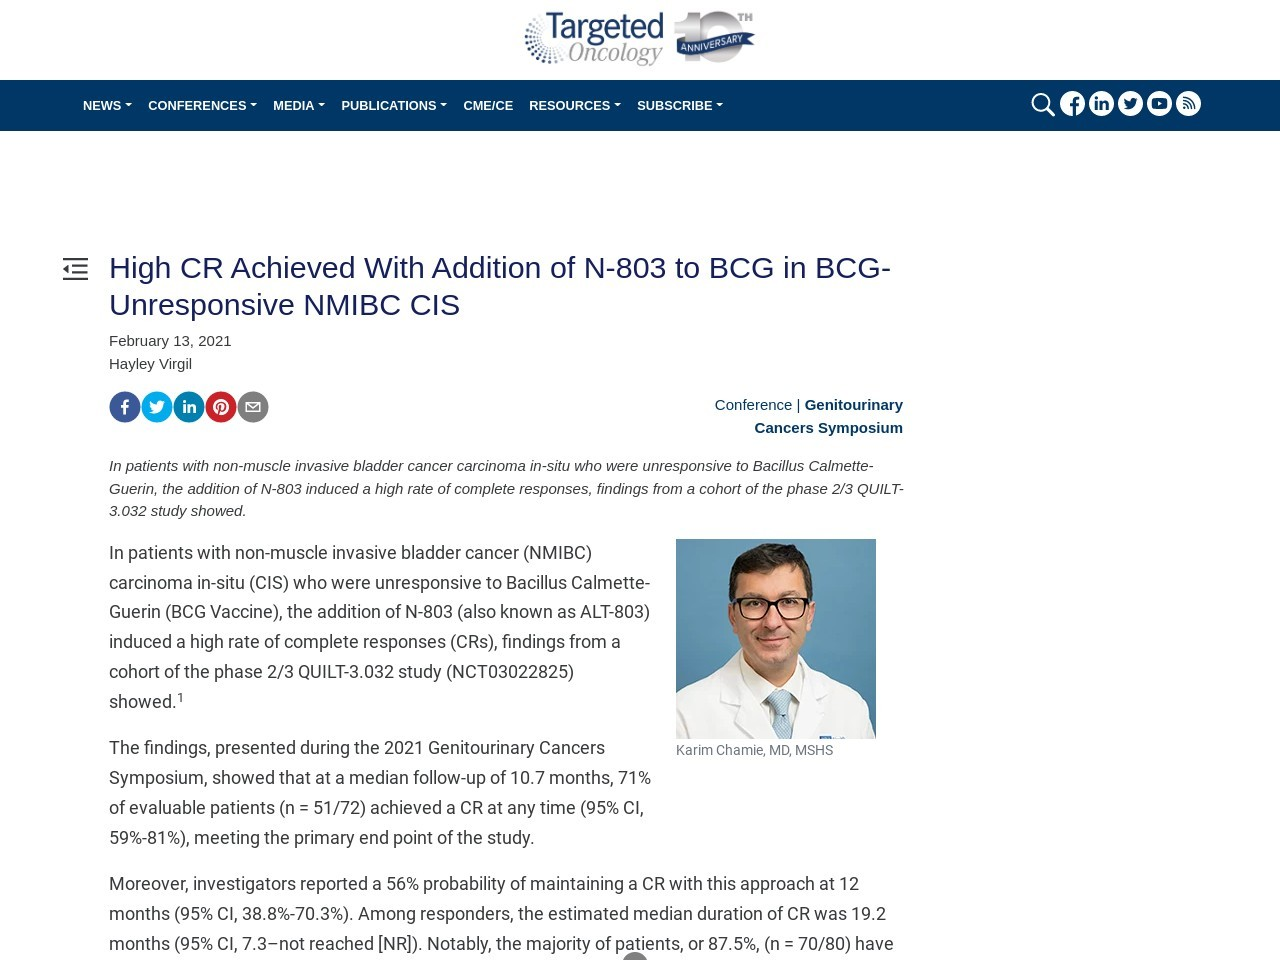 High CR Achieved With Addition of N-803 to BCG in BCG-Unresponsive NMIBC CIS